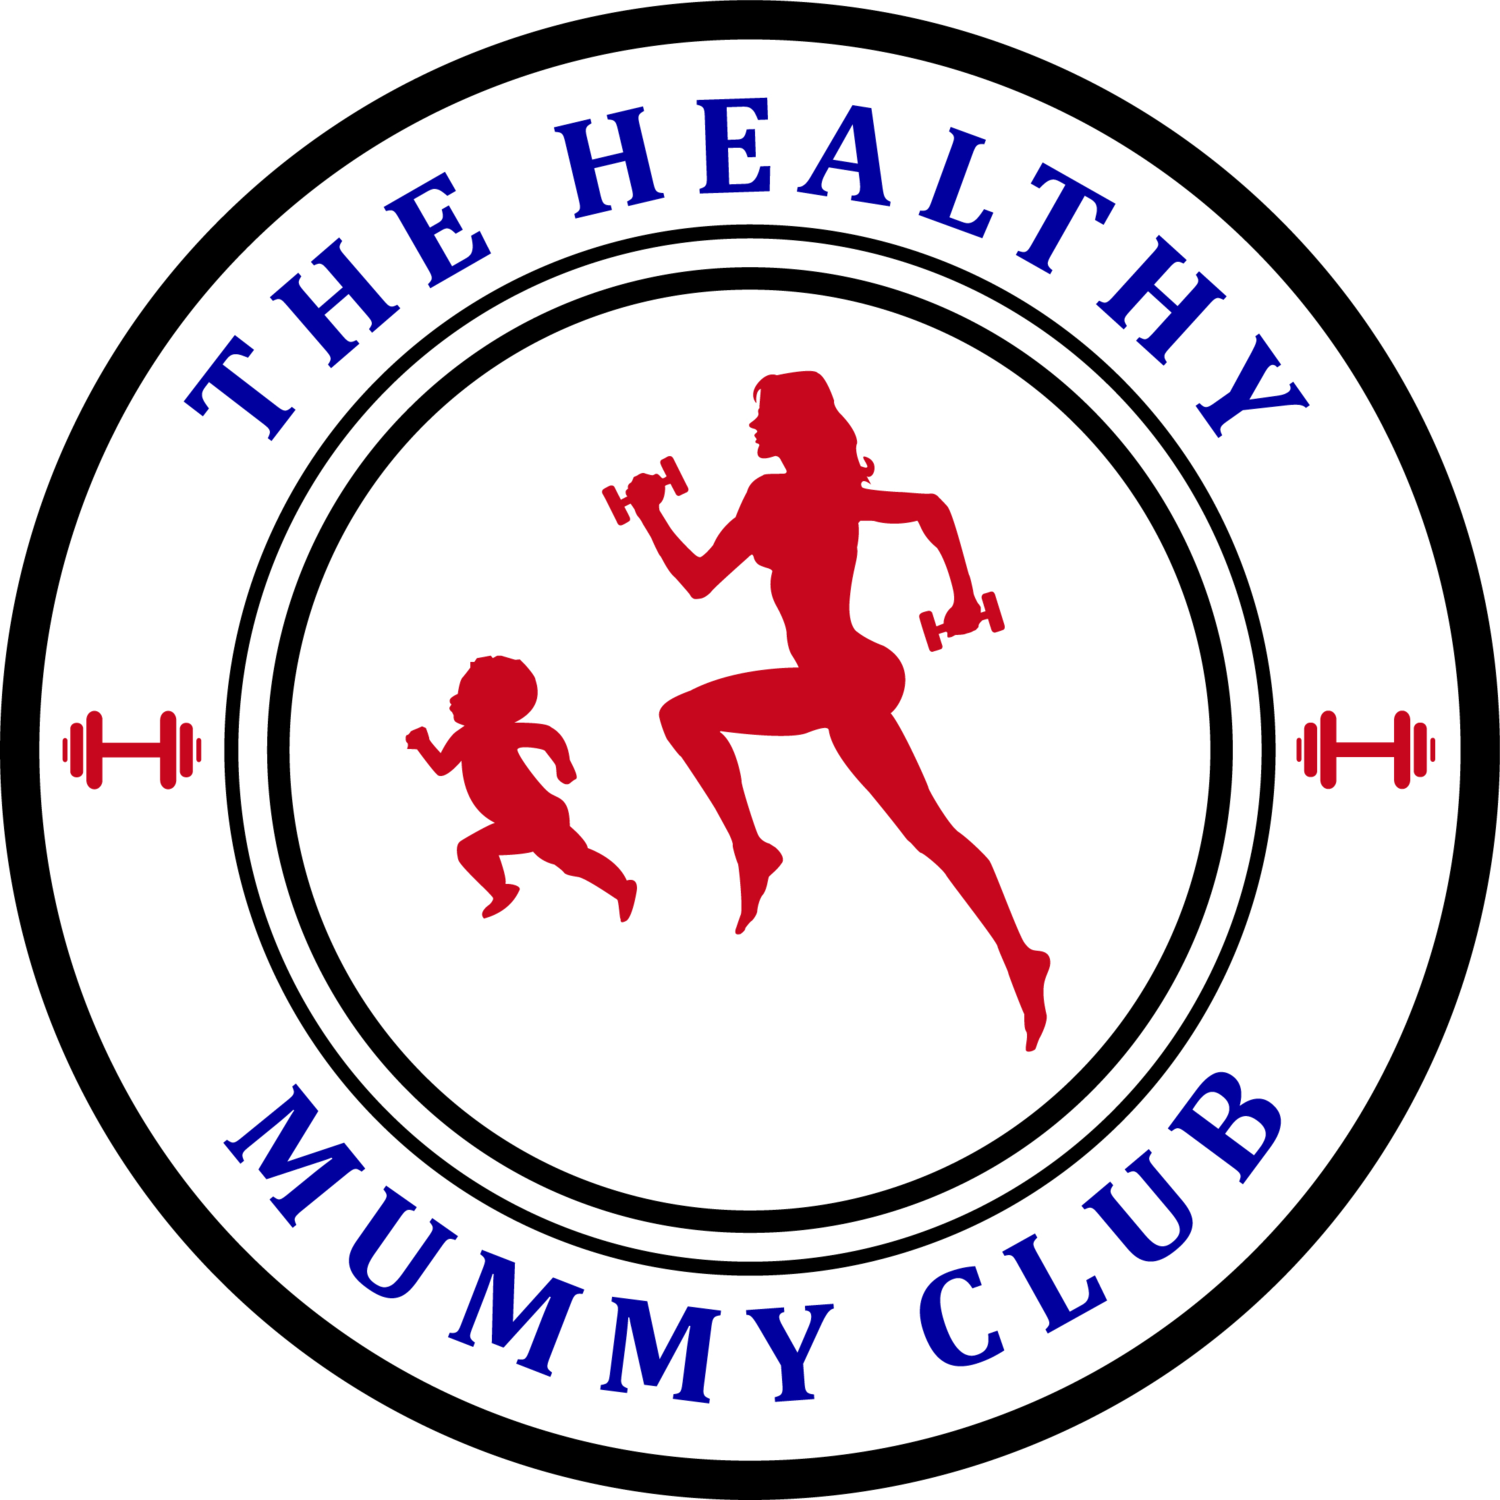 The Healthy Mummy Club